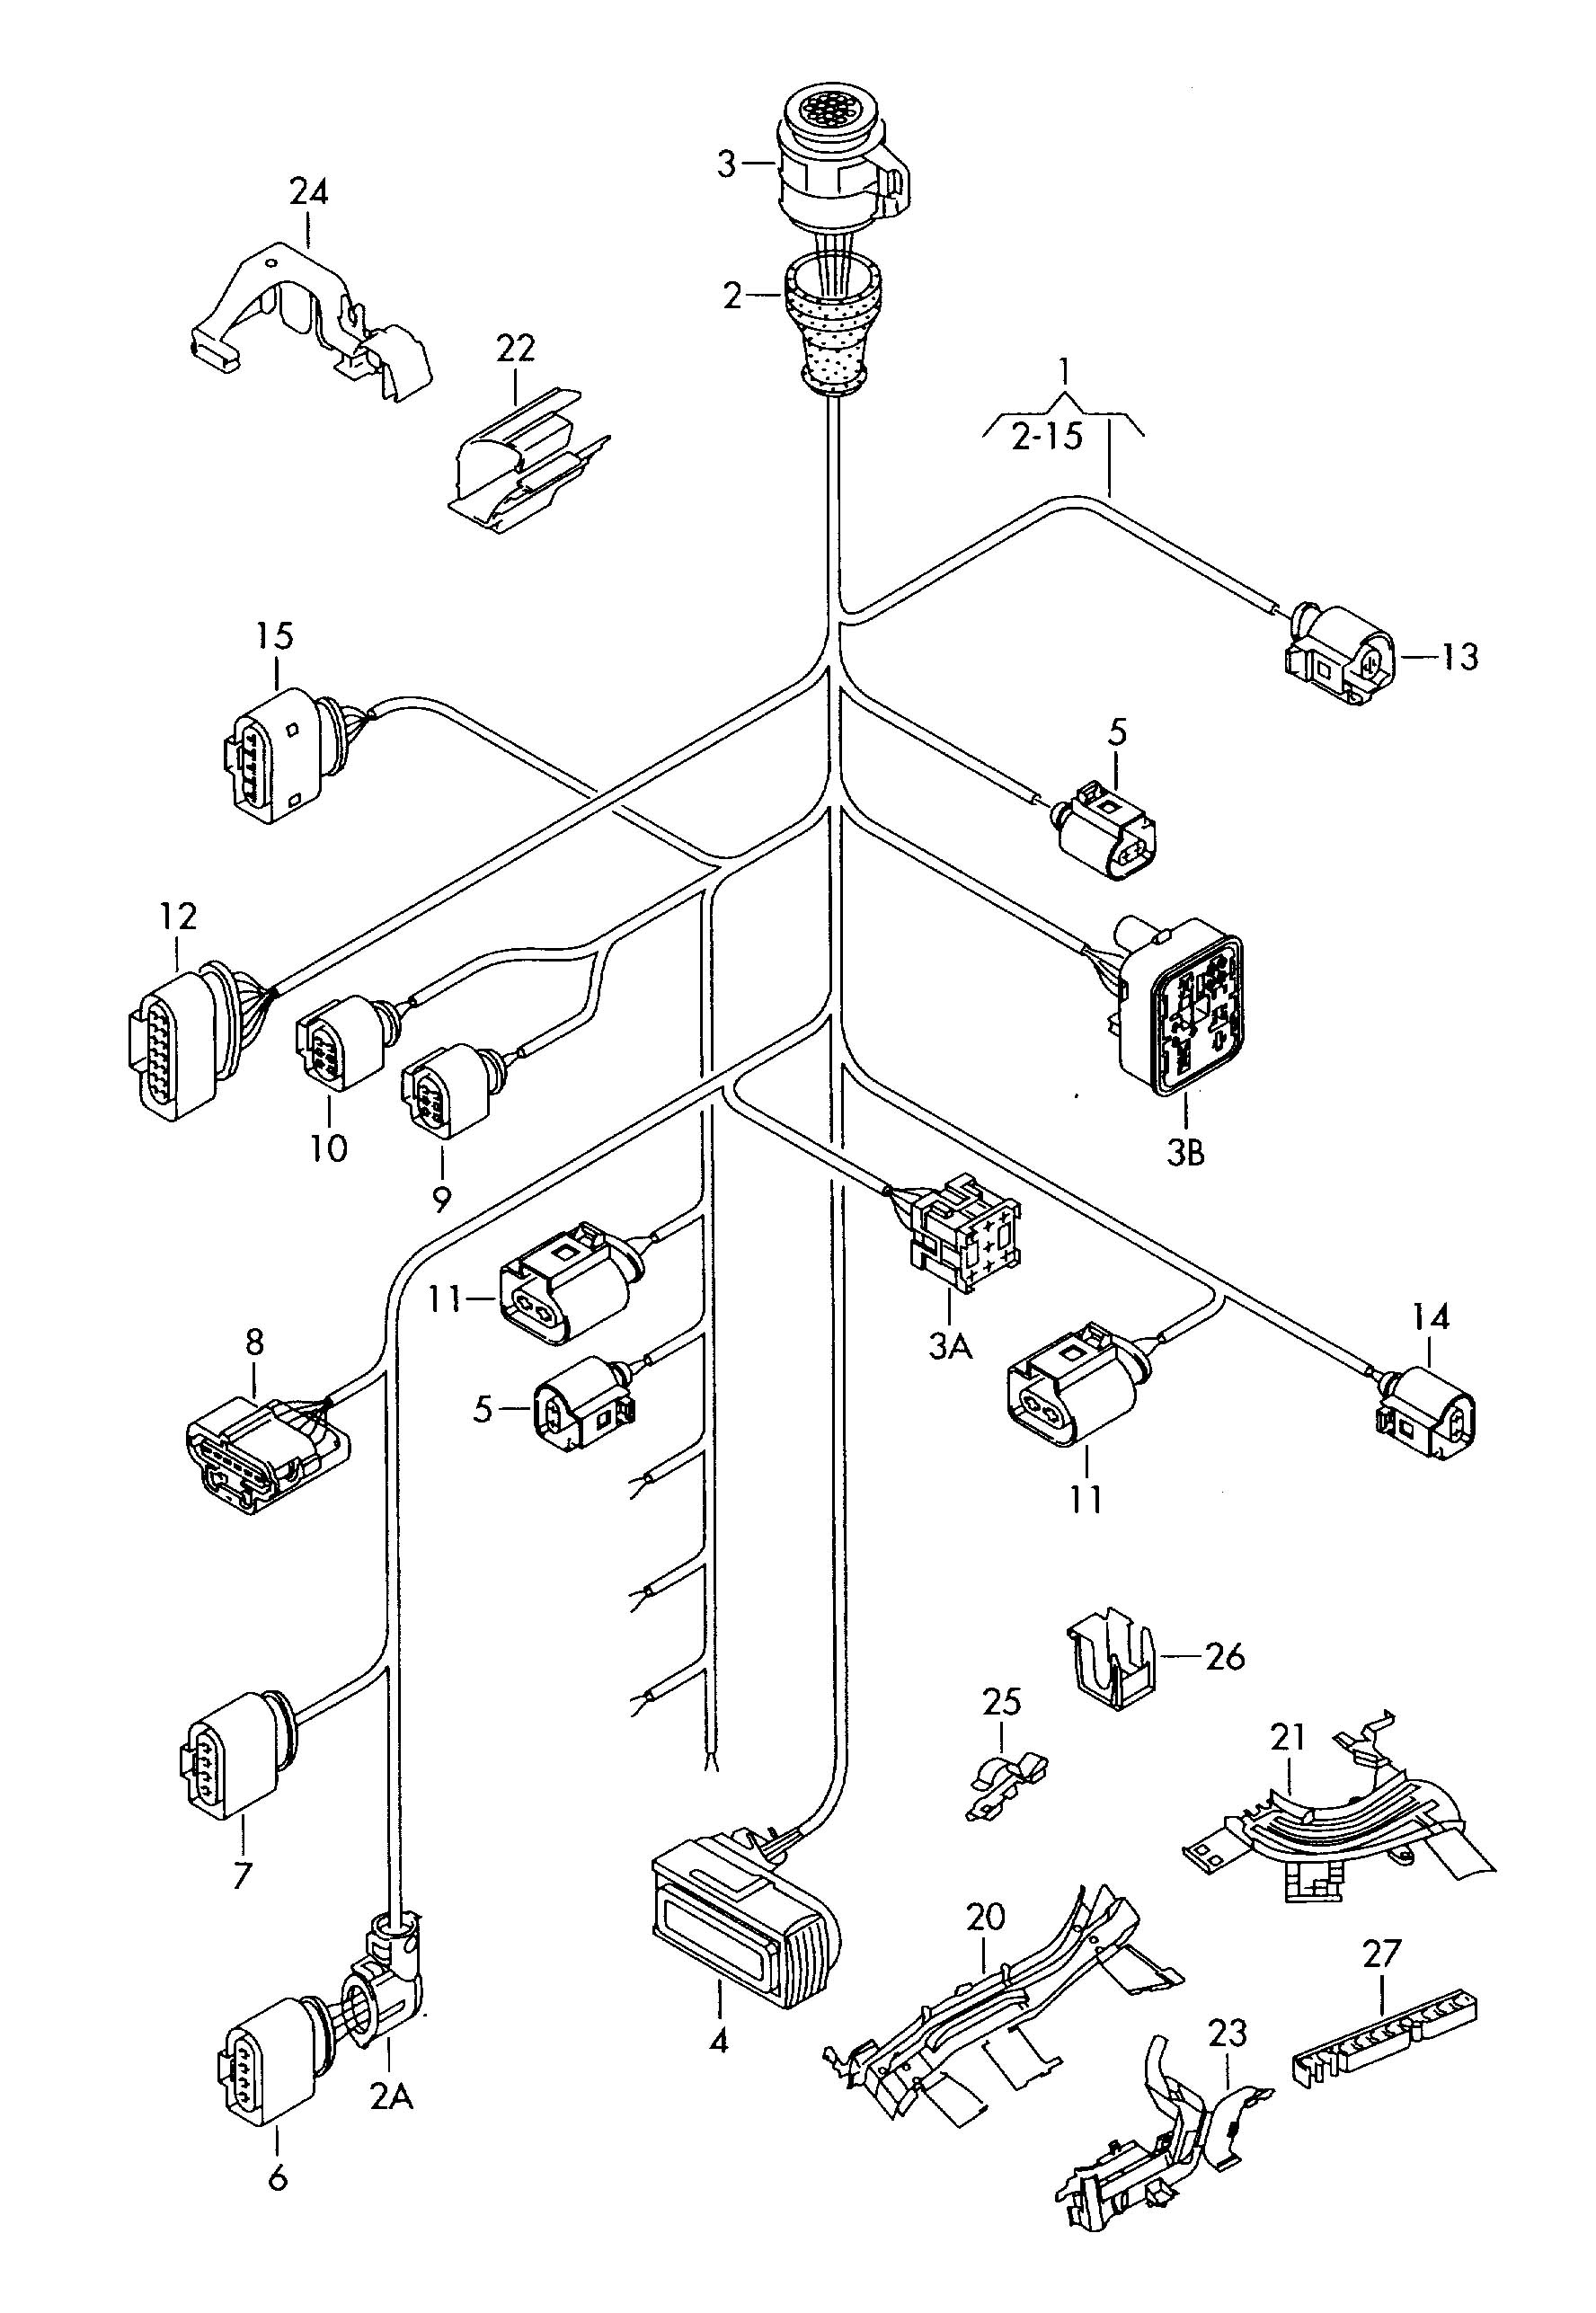 Volkswagen R32 Single Parts Which Do Not Single Parts Sectional Wire Harness For Belong To The